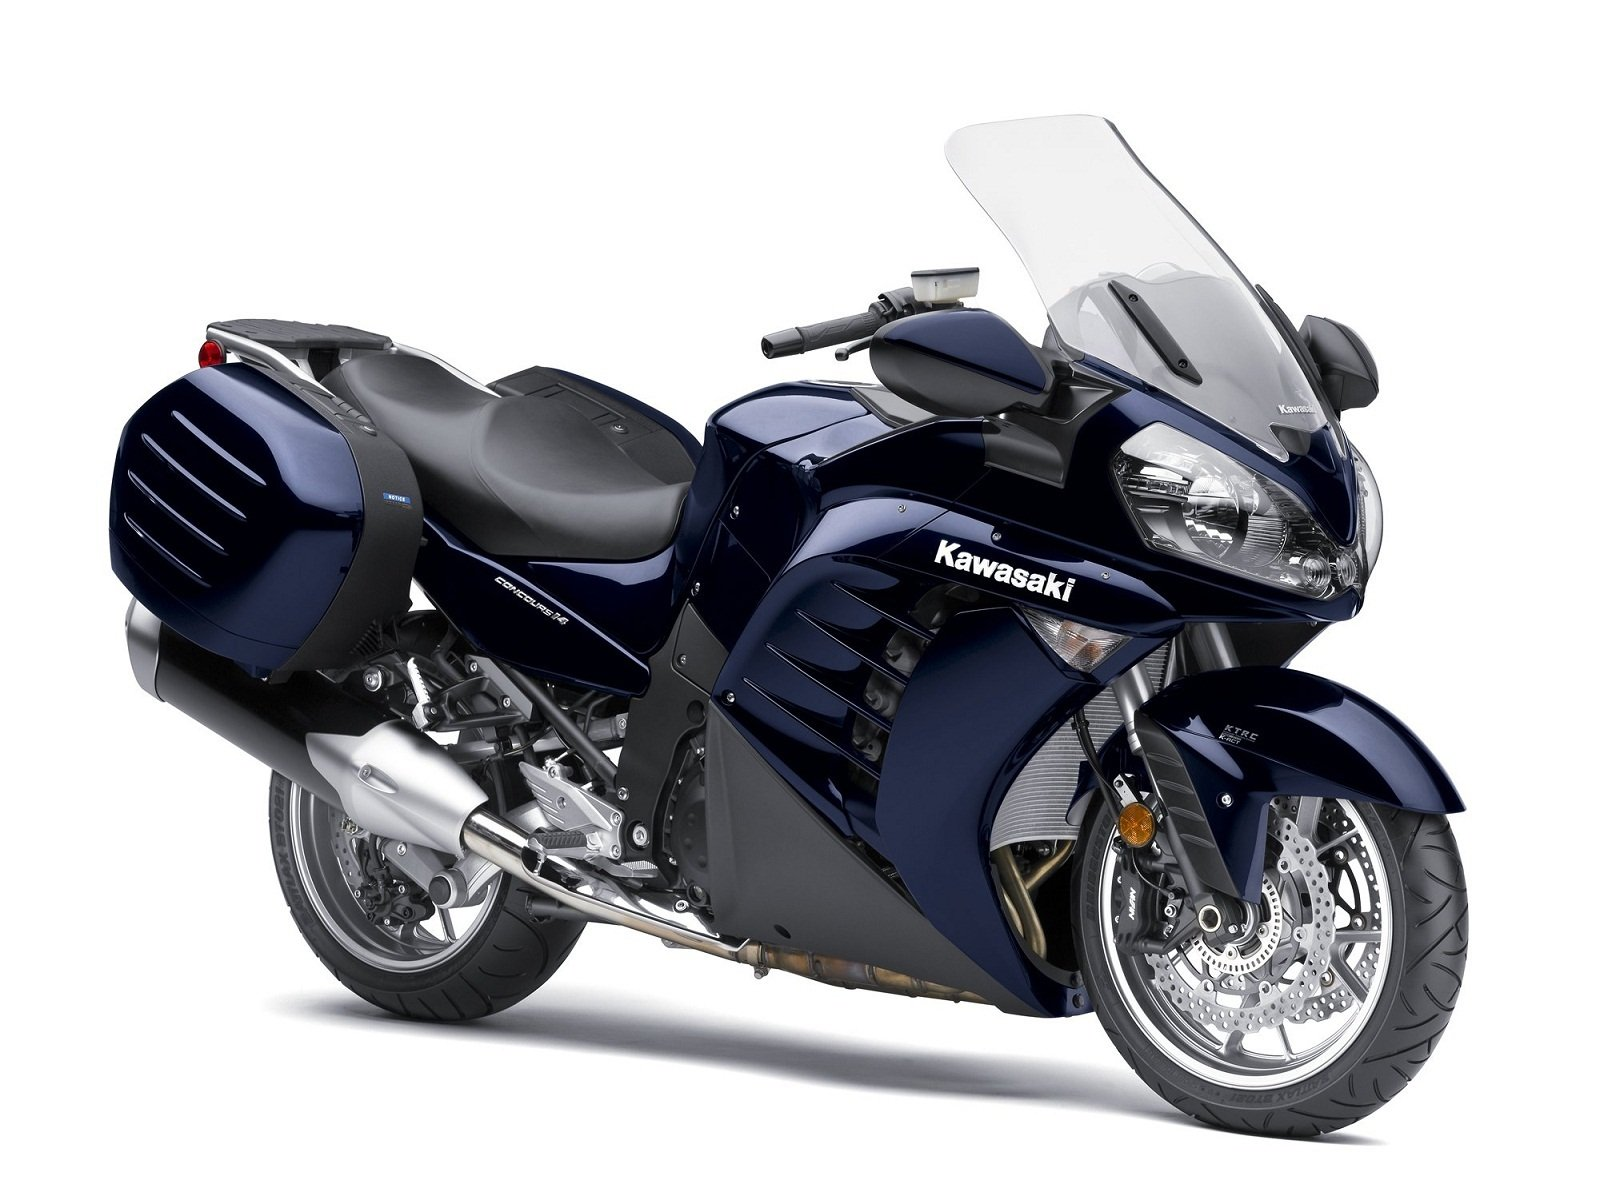 2011 Kawasaki Concours 14 Picture 411916 Motorcycle